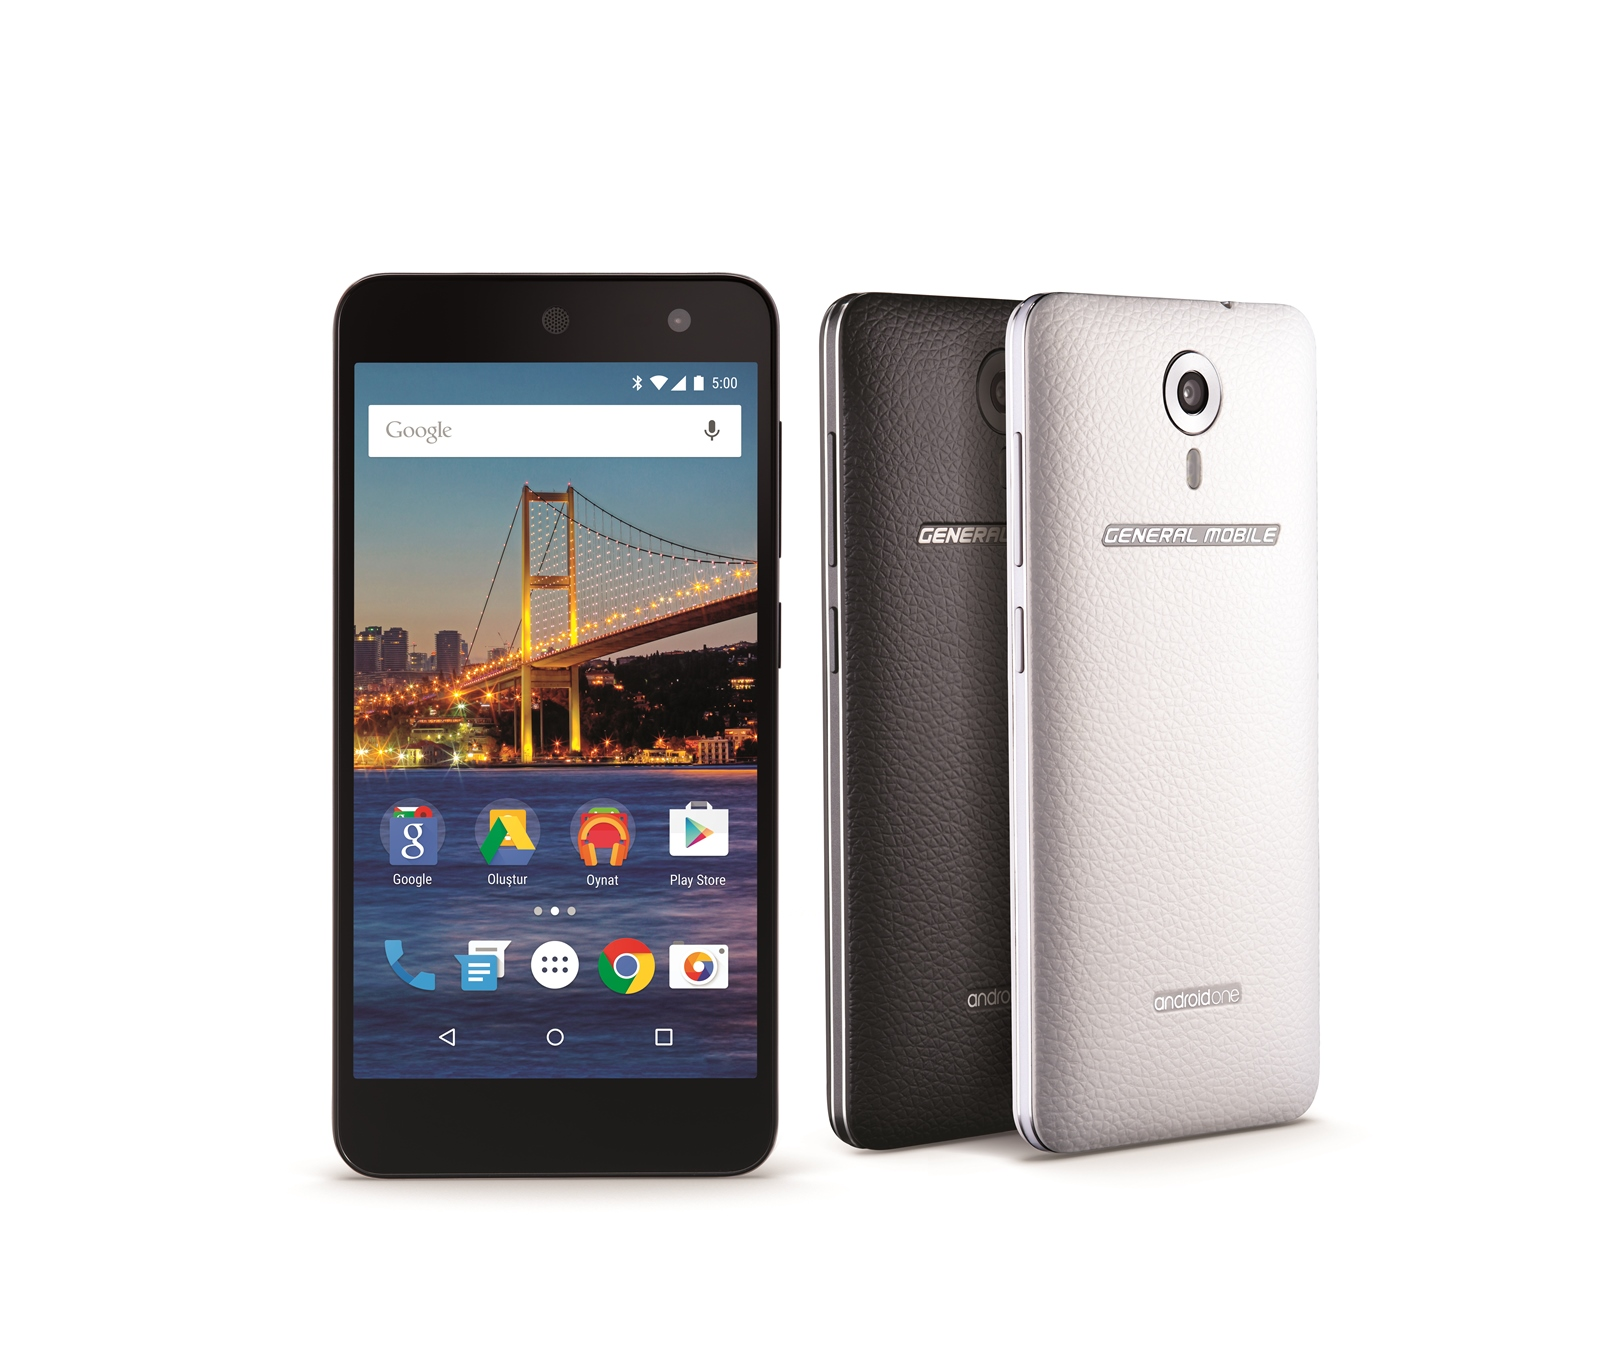 Android One is launching in Turkey, its first country outside of Asia